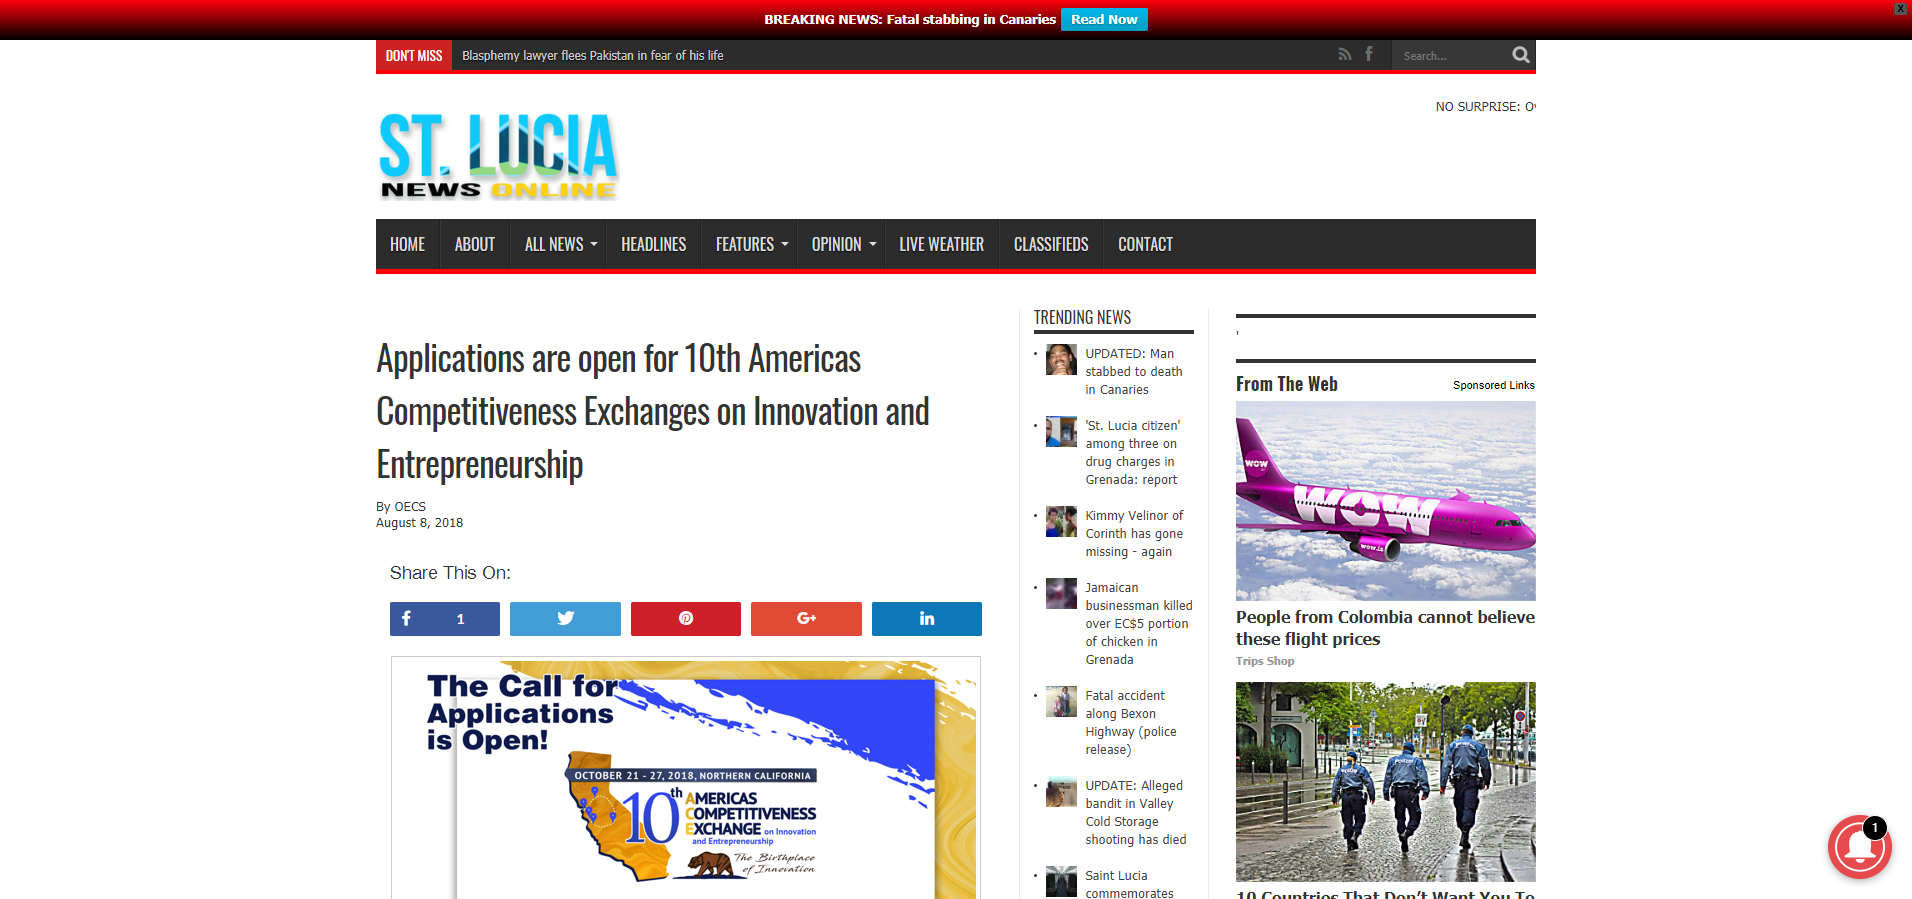 Applications are open for 10th Americas Competitiveness Exchanges on Innovation and Entrepreneurship